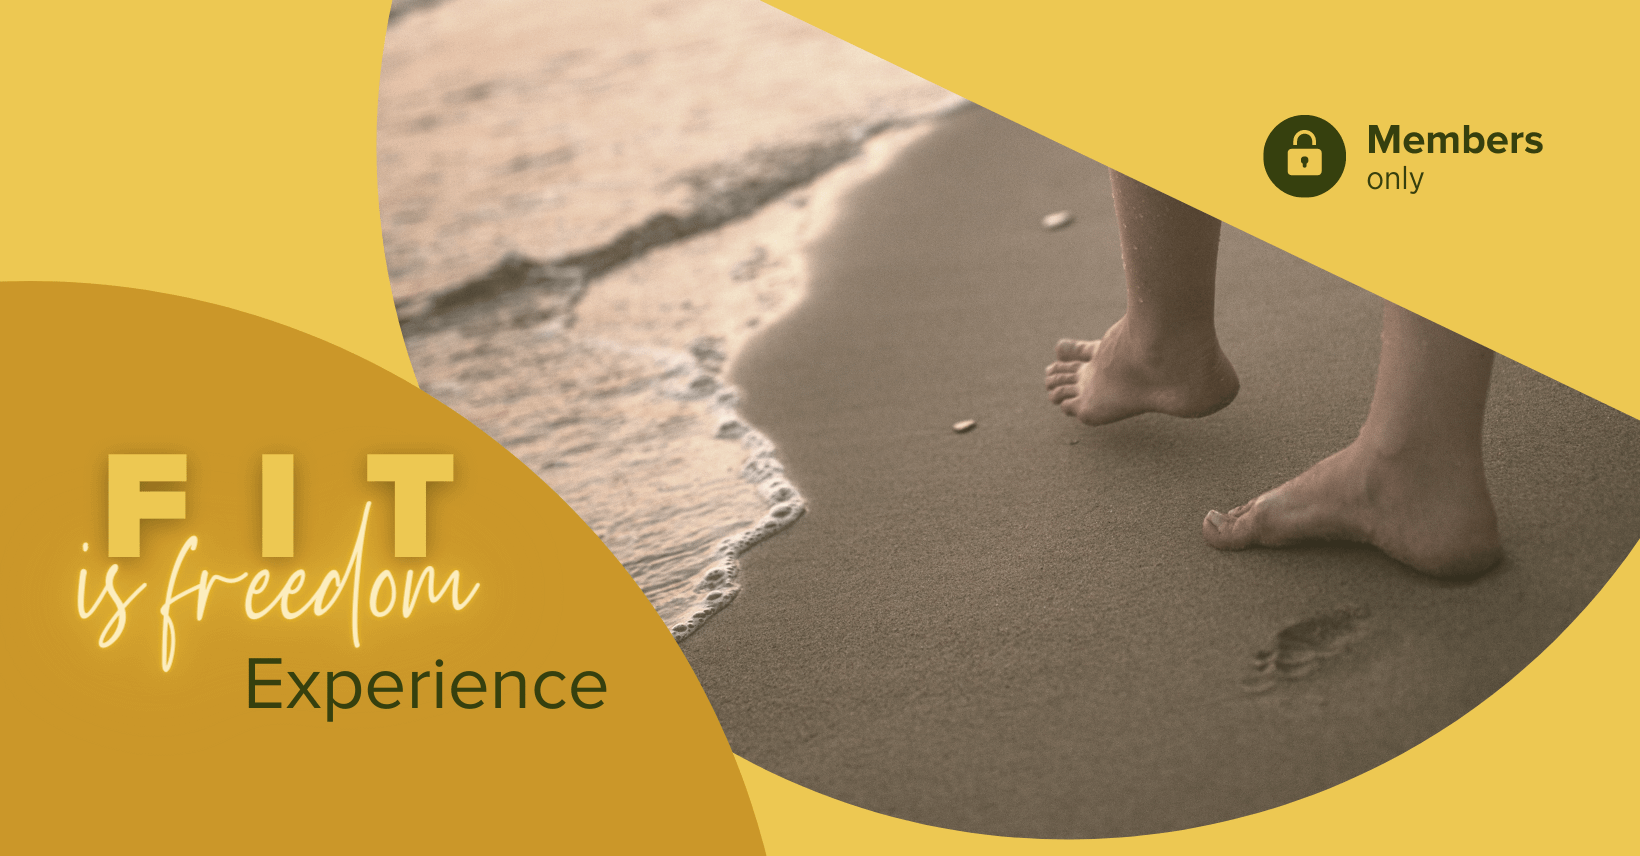 Fit is Freedom Experience coaching call header. Yellow background, feet walking through sand, members only